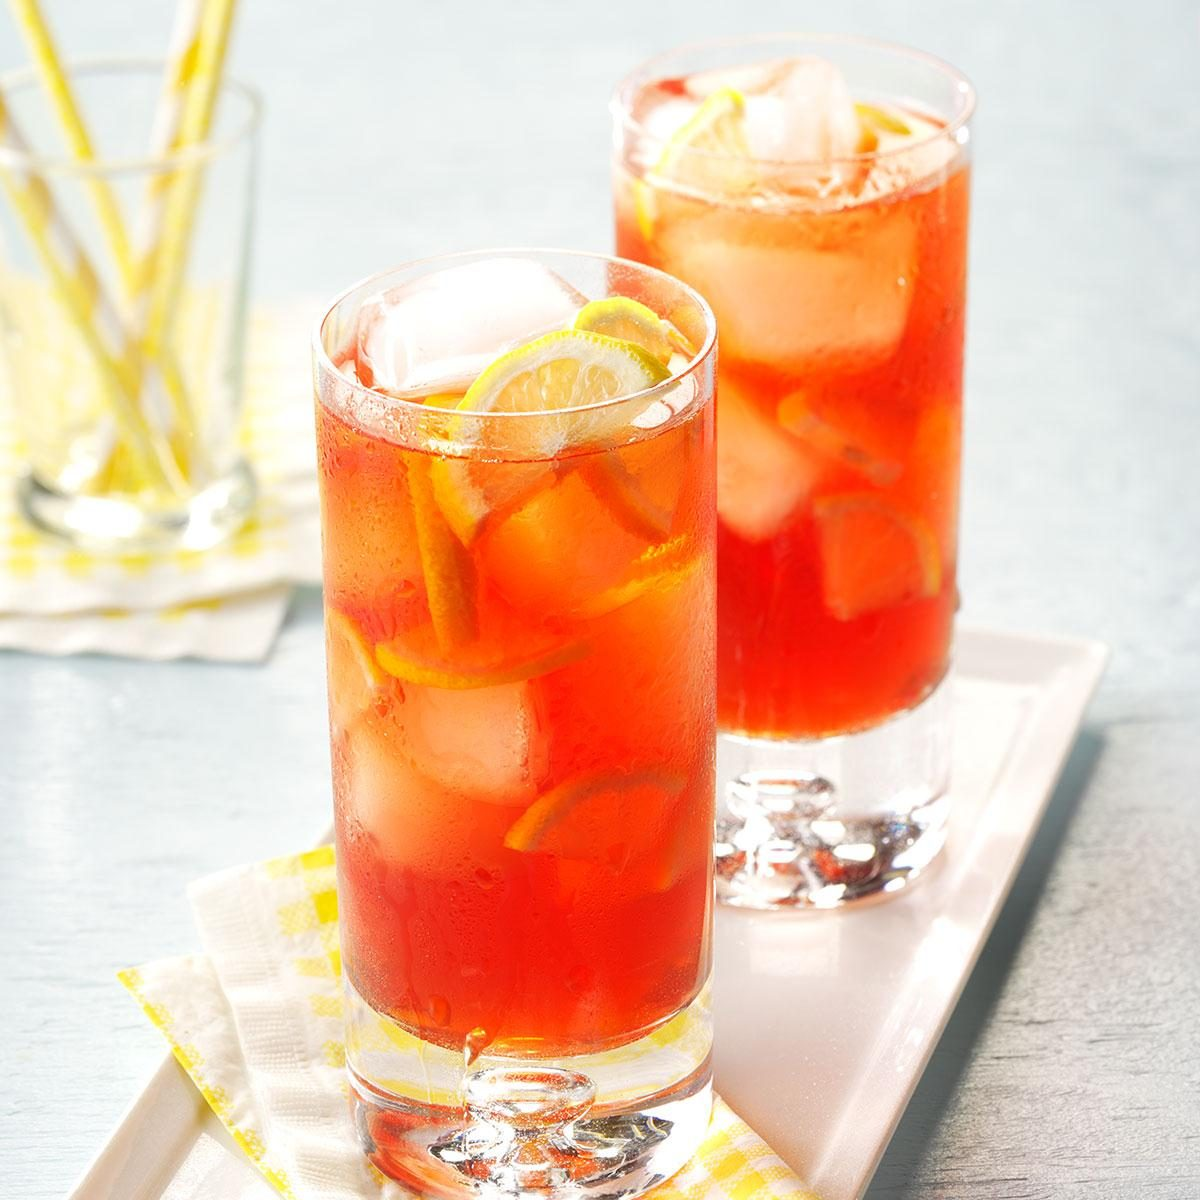 Raspberry iced tea recipe taste of home for Tea and liquor recipes